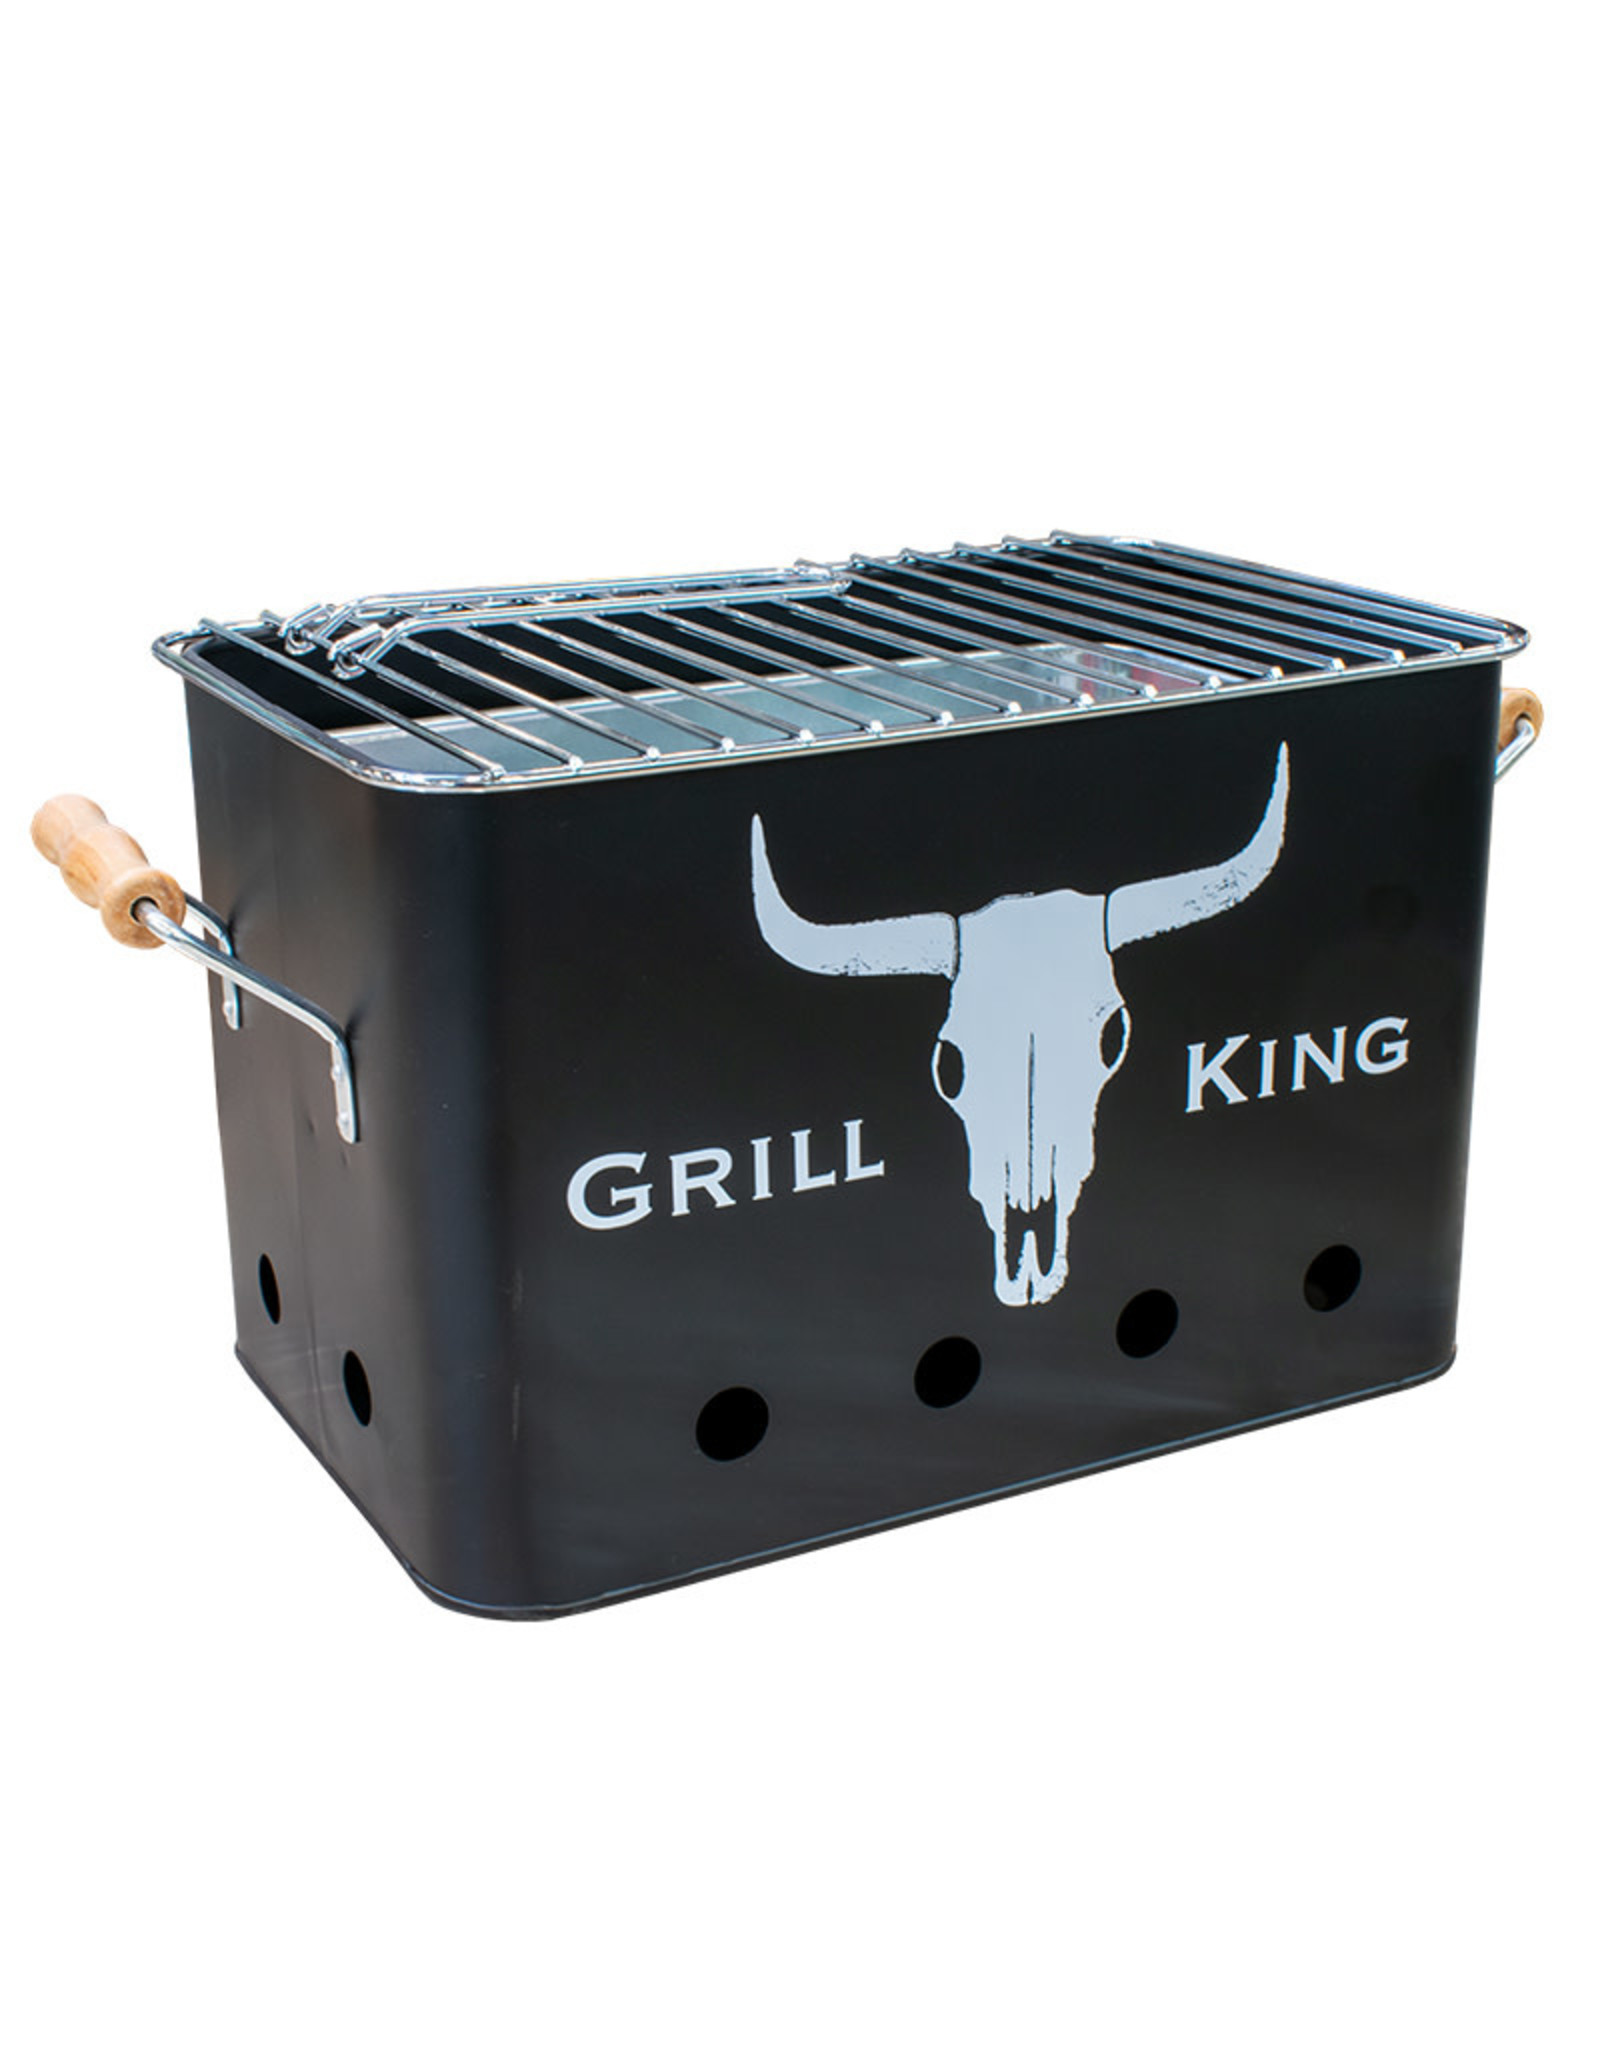 Grill King Grill King - Portable bbq rectangular with grips